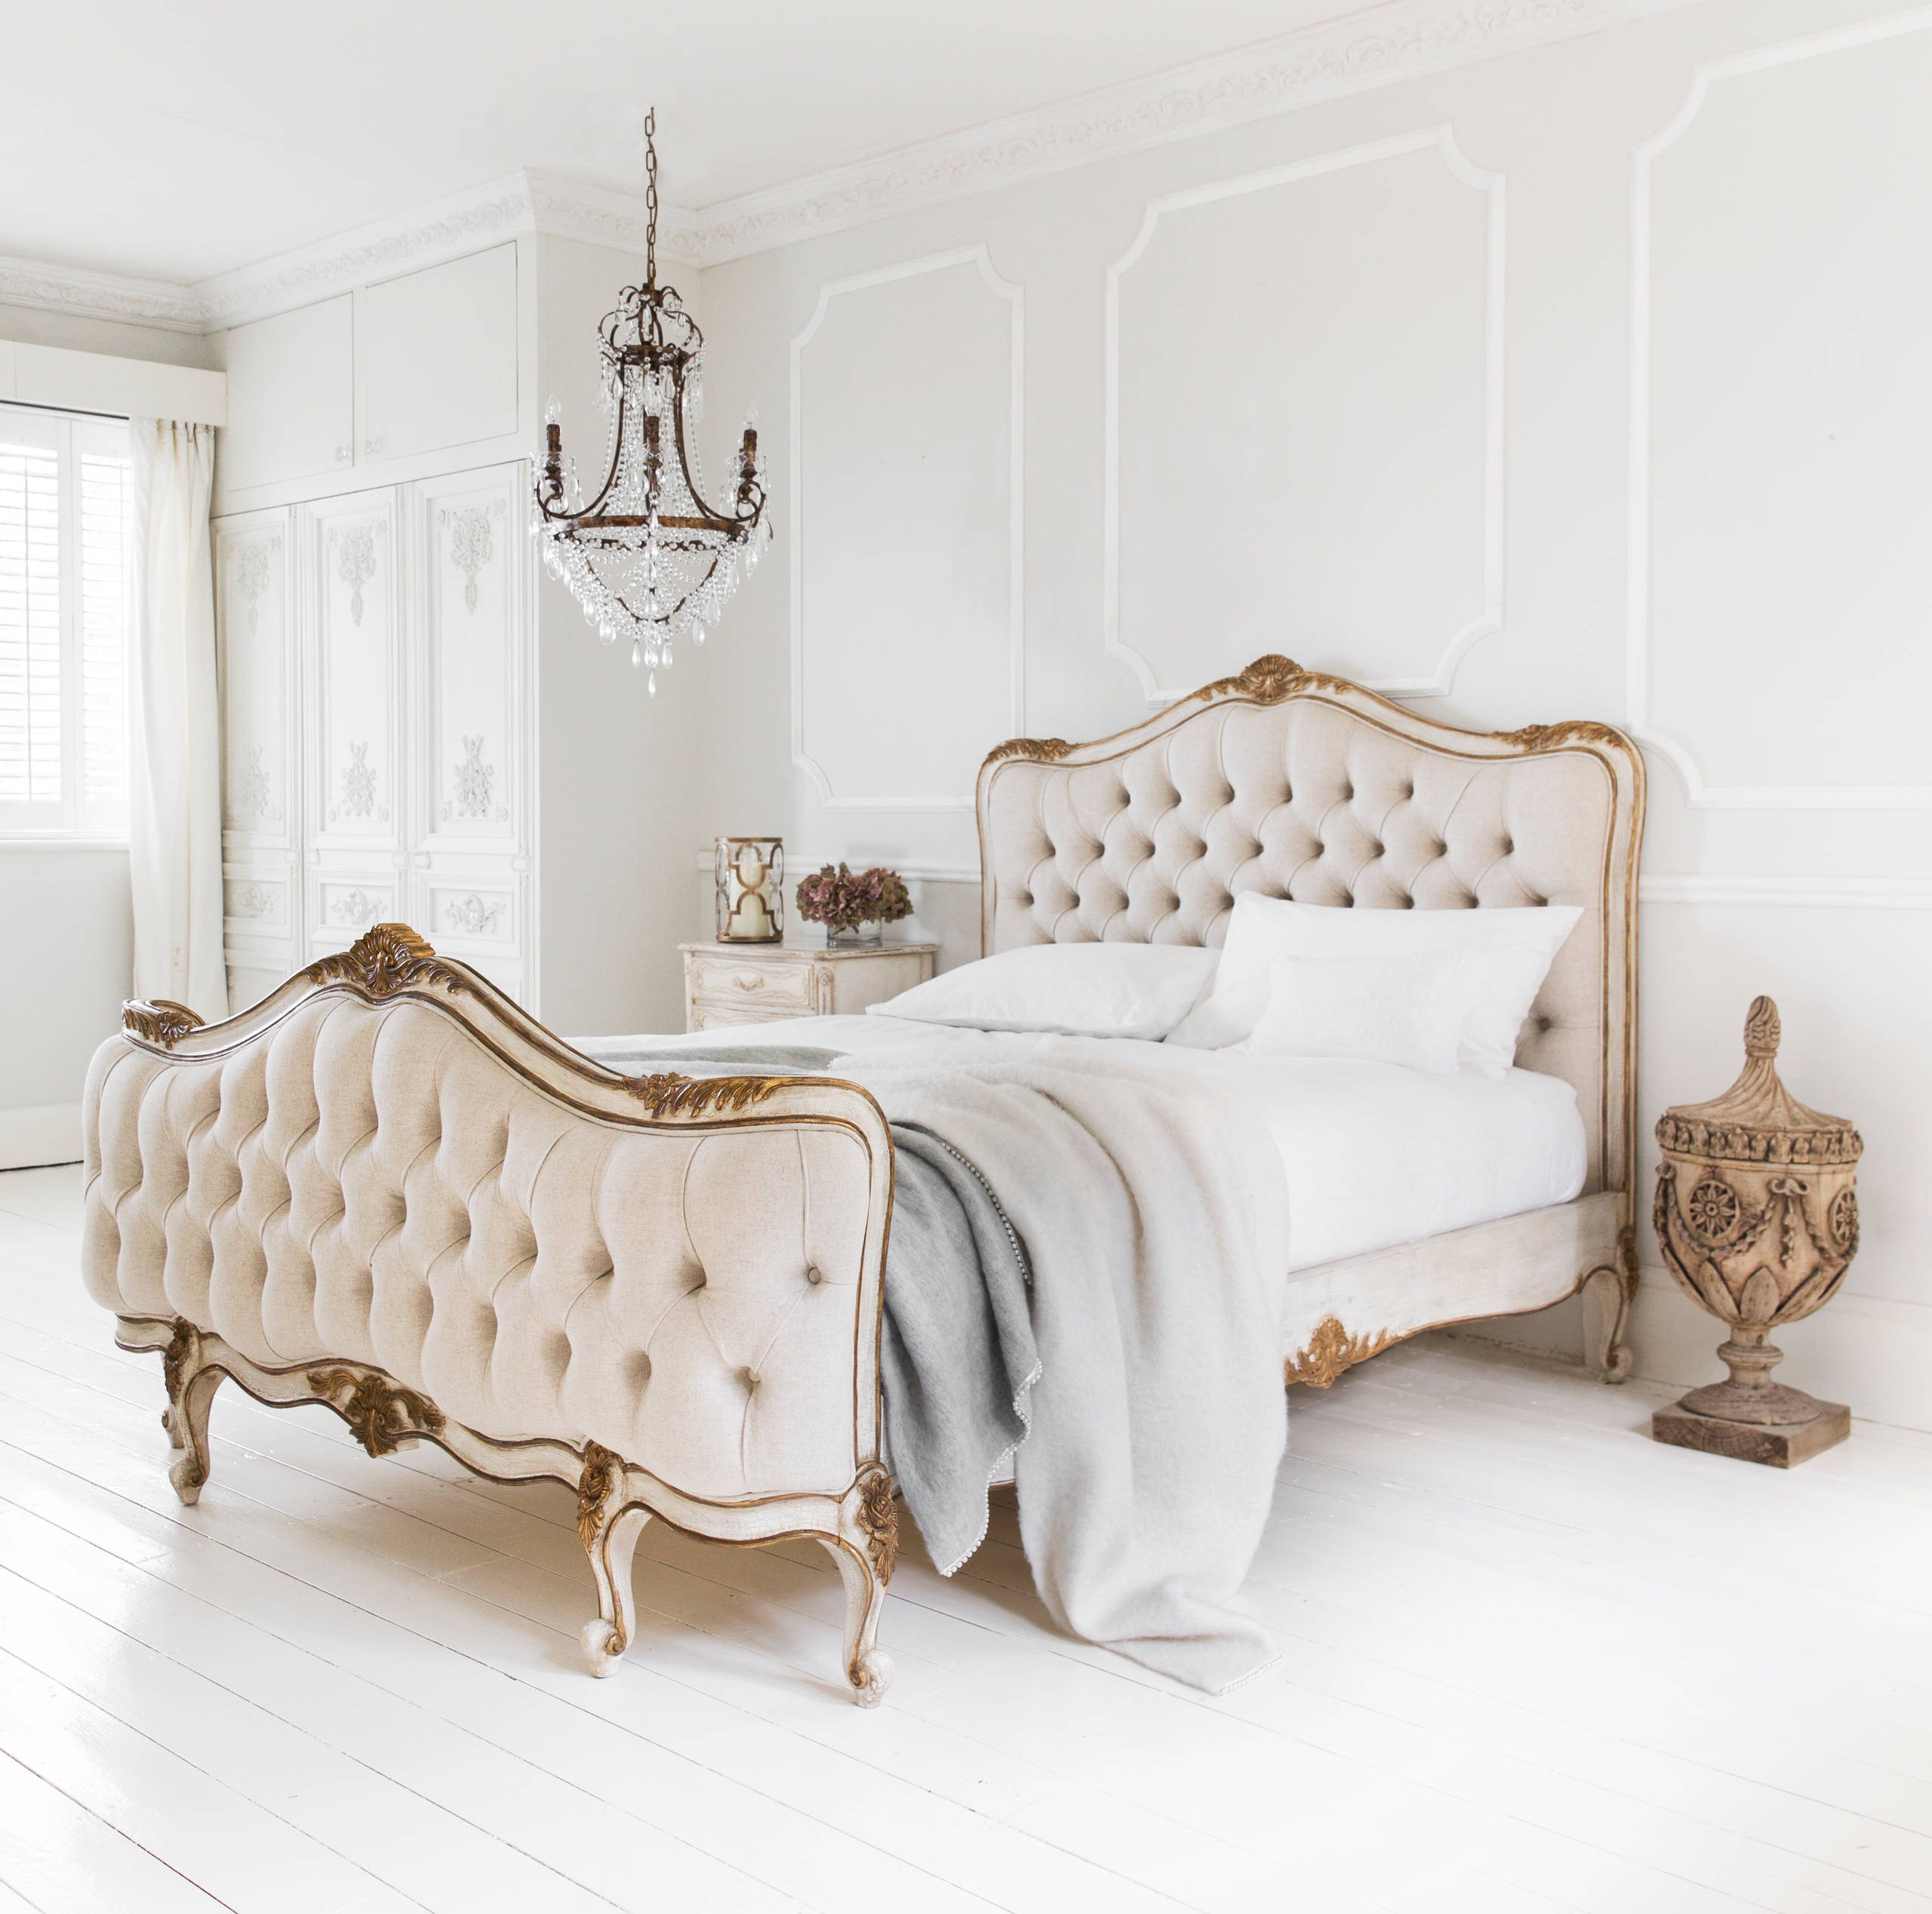 3 secrets to french decorating versailles inspired rooms for Designer inspired bedding